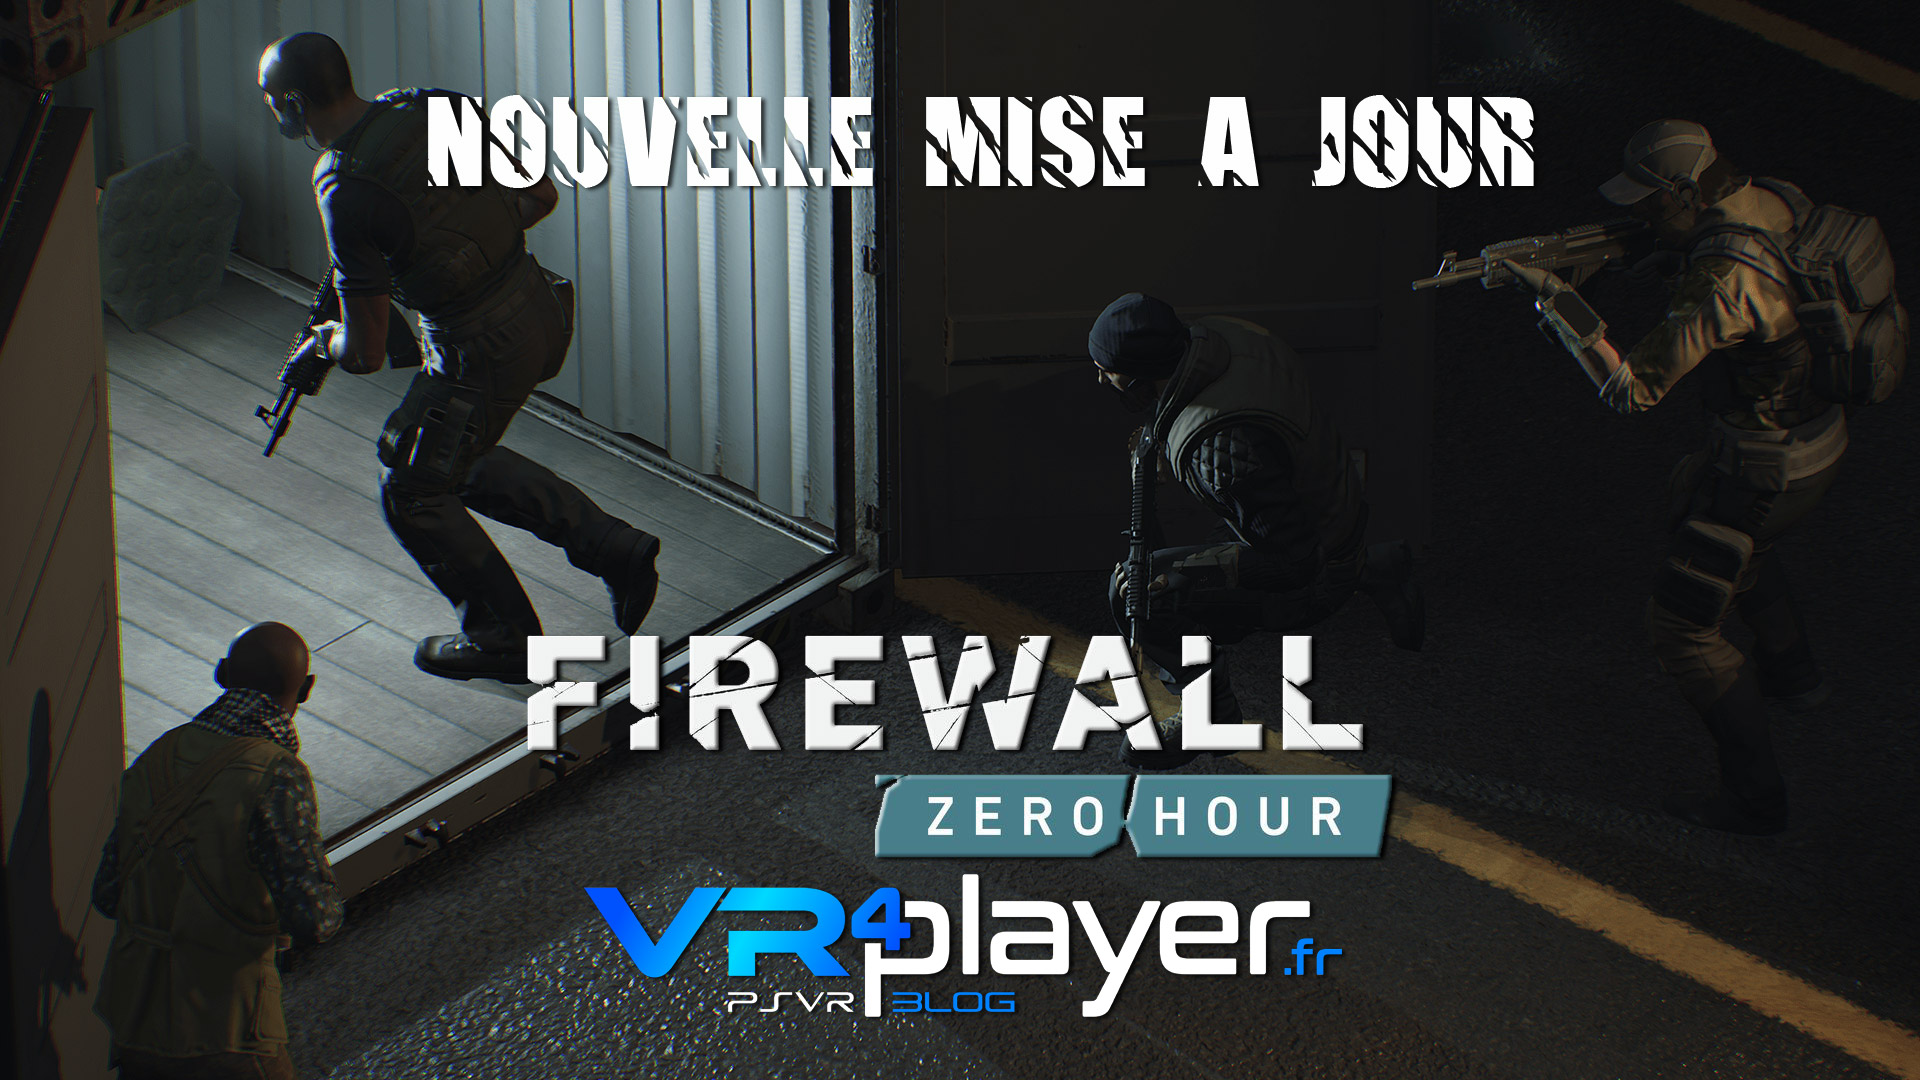 le patch 1.03 est sorti pour Firewall vr4player.fr